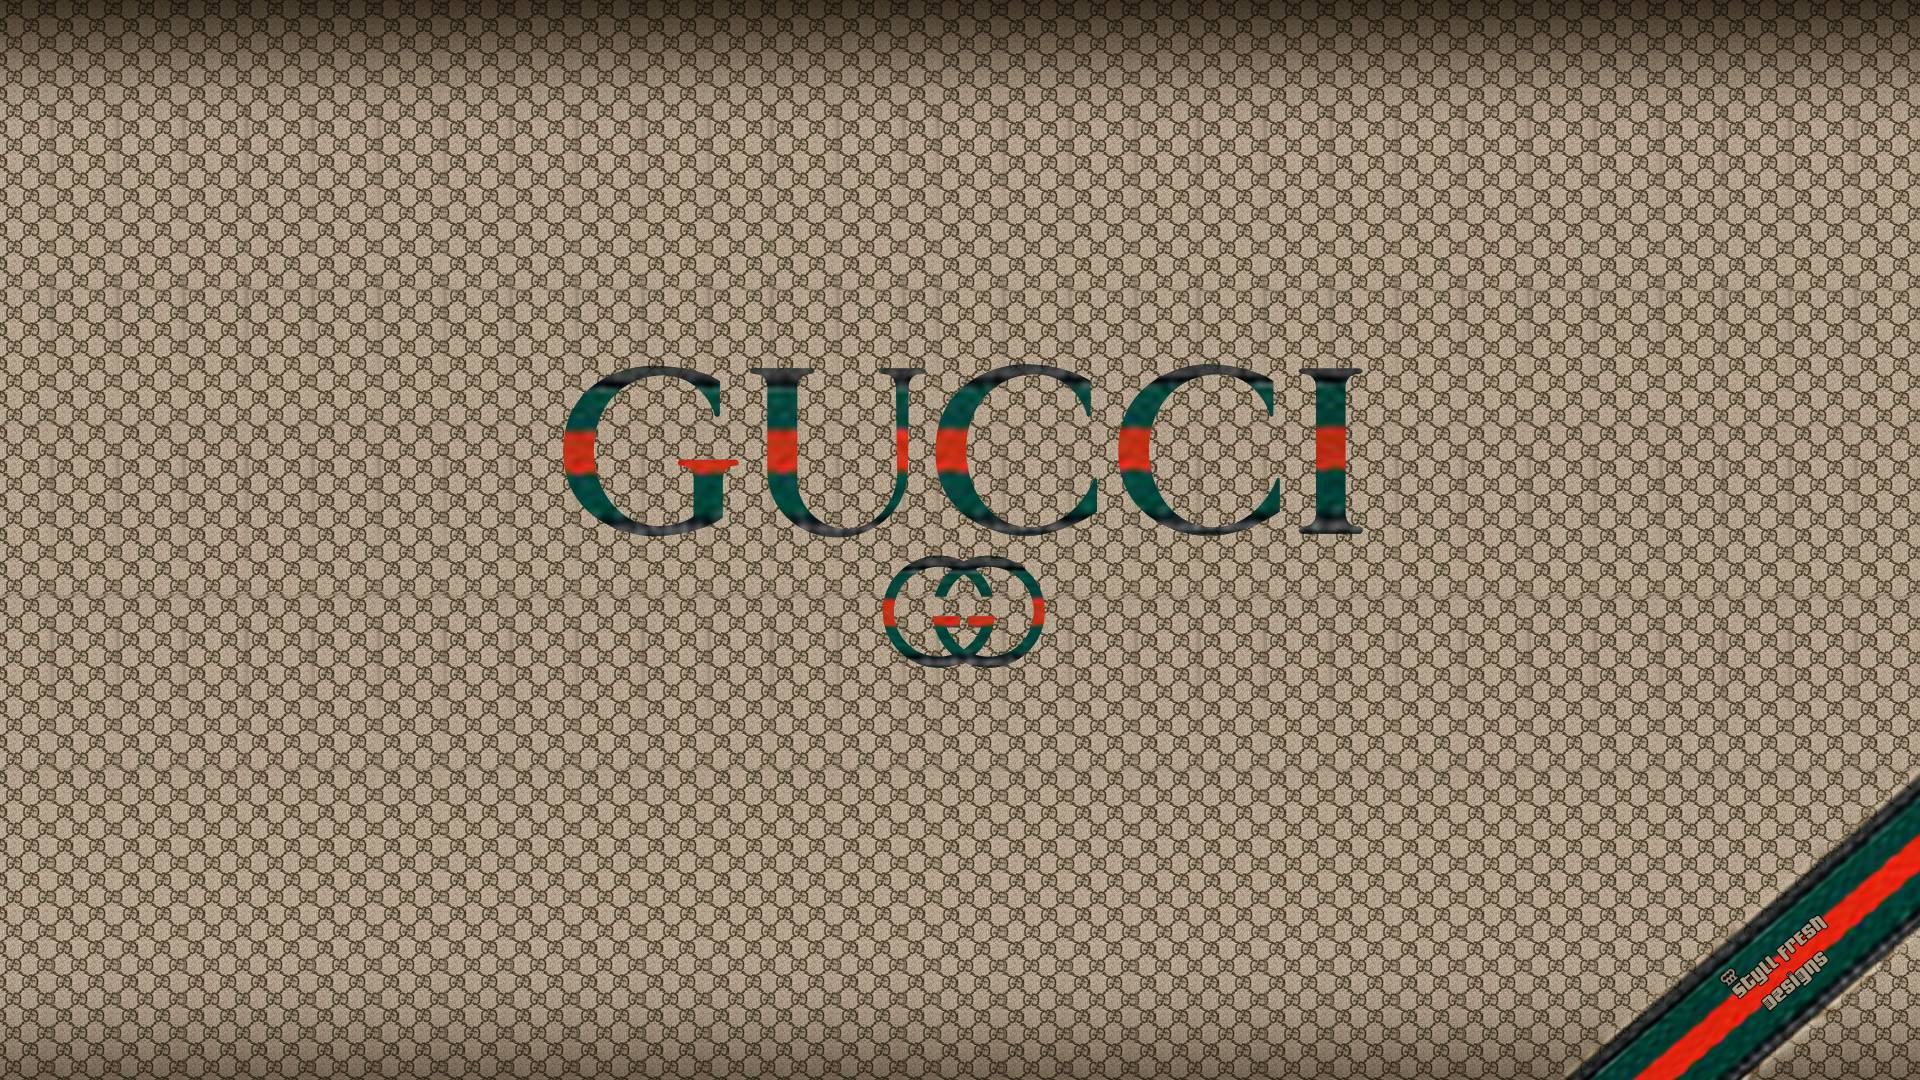 Gucci Wallpapers   Top Gucci Backgrounds   WallpaperAccess 1920x1080